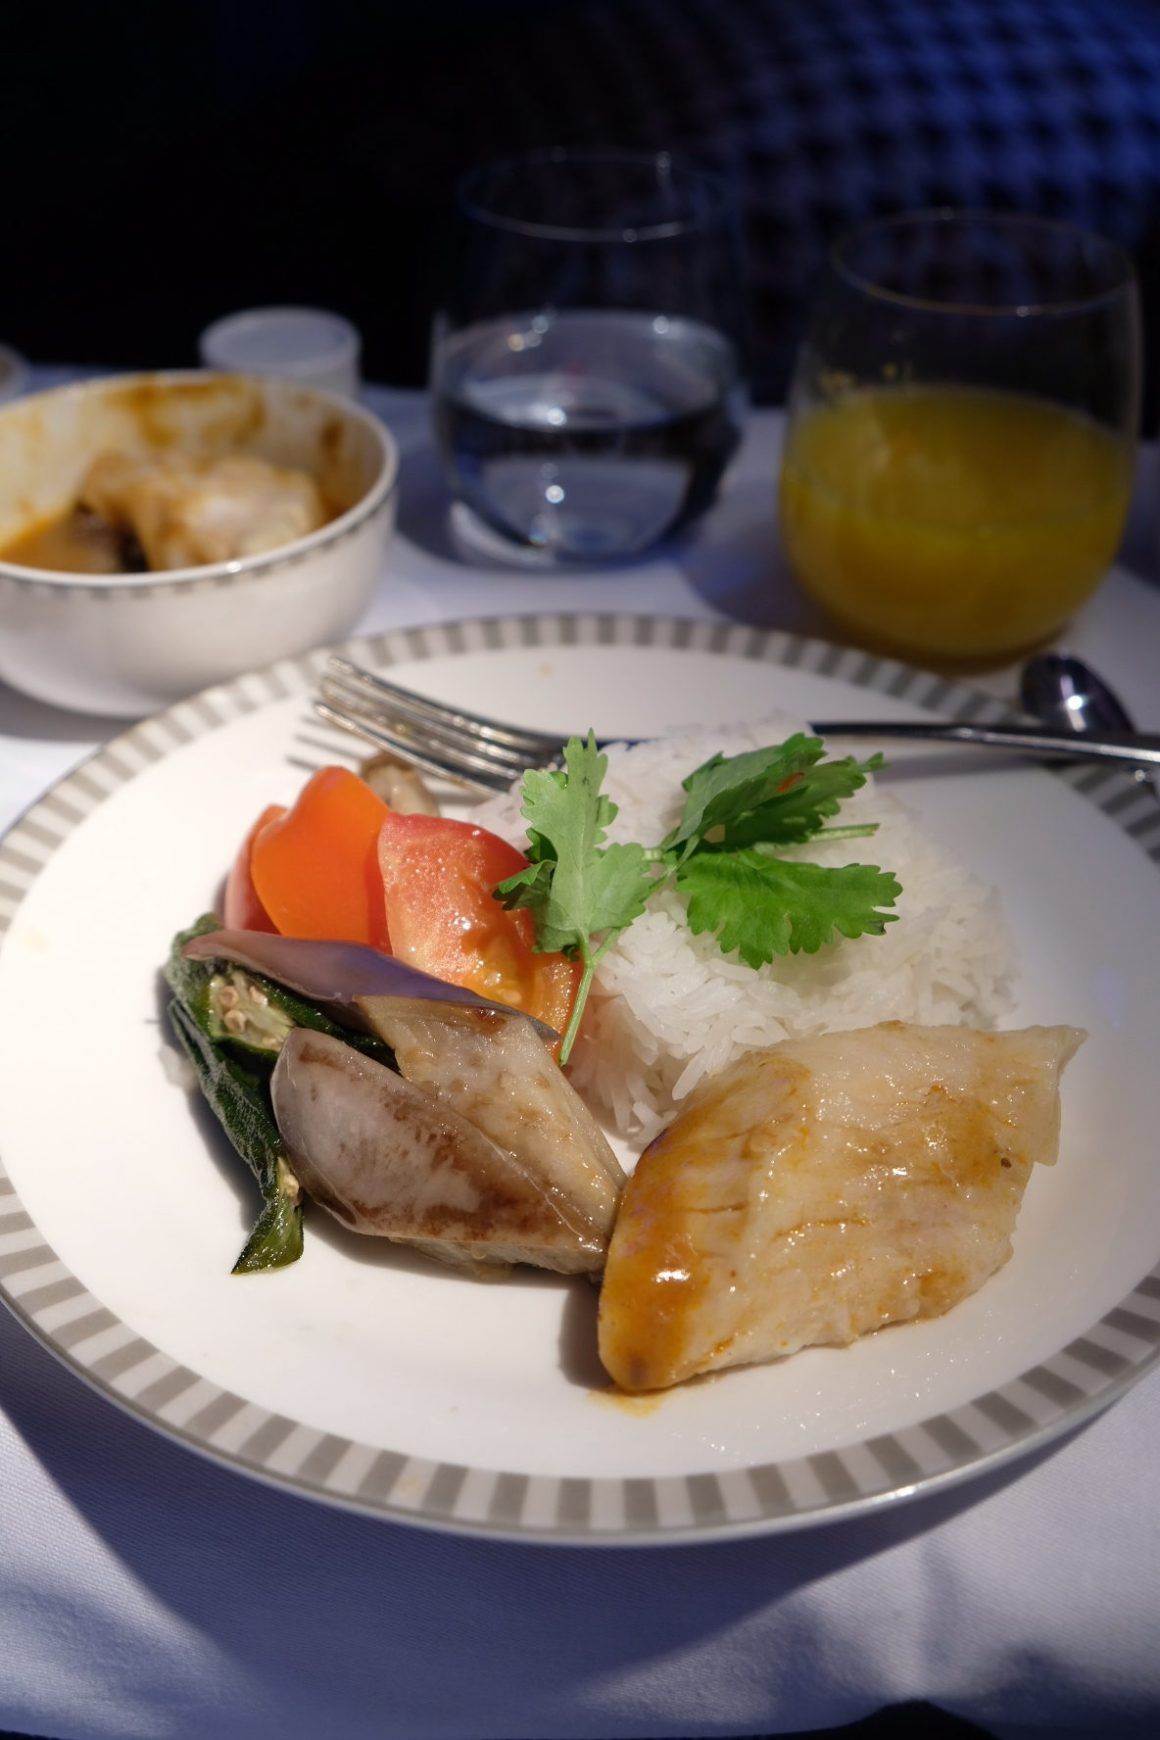 Singapore Airlines Business Class Book The Cook - Nonya Assam Fish